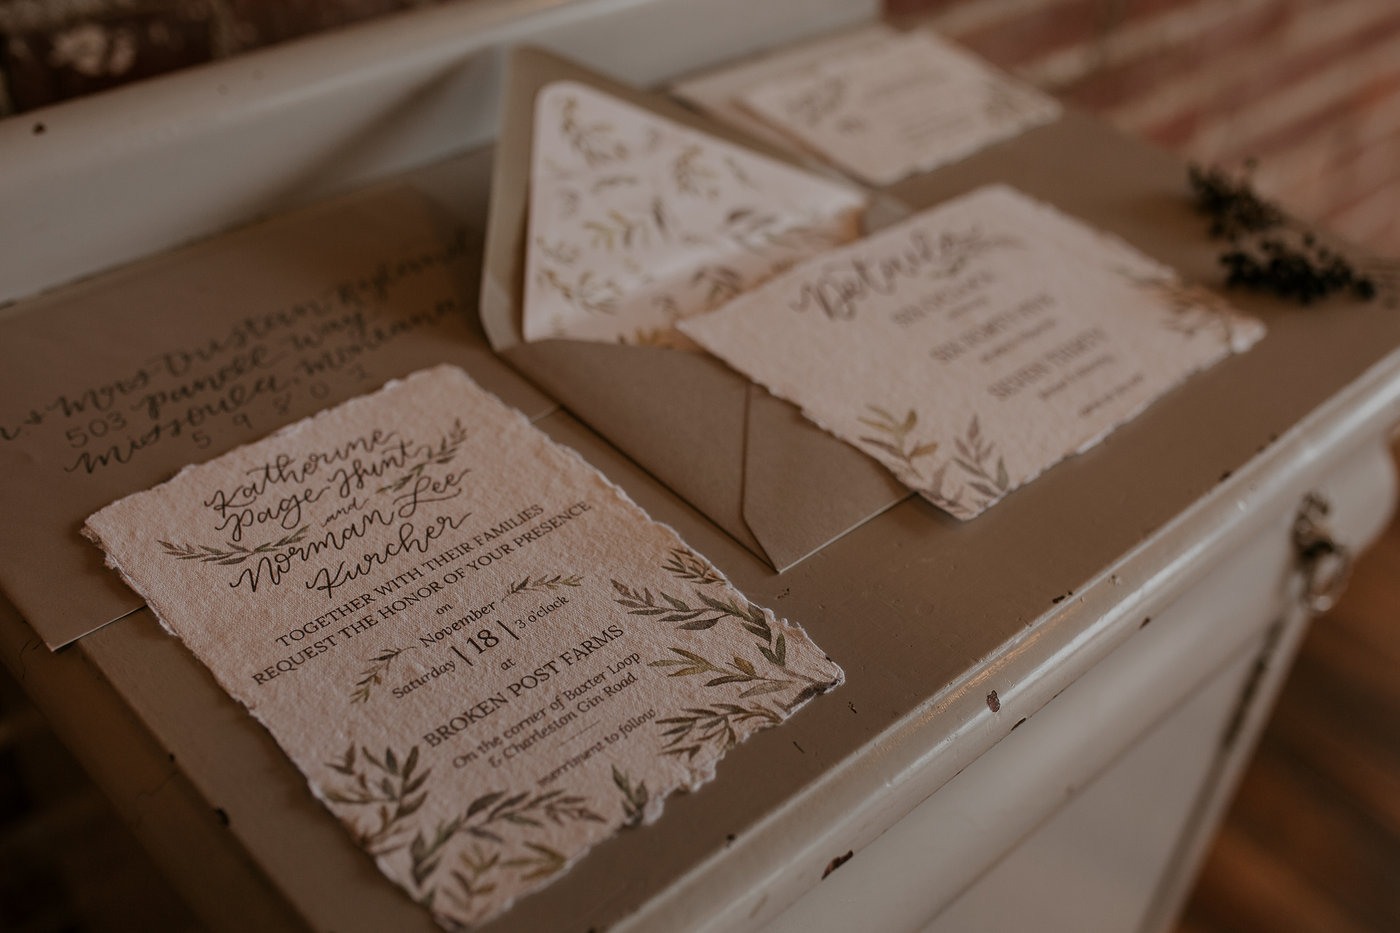 C U S T O M  I N V I T A T I O N S - Your invitations are the very first impression of your wedding to your guests. With custom stationery, we start completely from scratch to encapsulate the essence of your love story - on paper. The sky is the limit, and every detail is curated for you. Let's chat today about how we can create tangible memories of your special day.